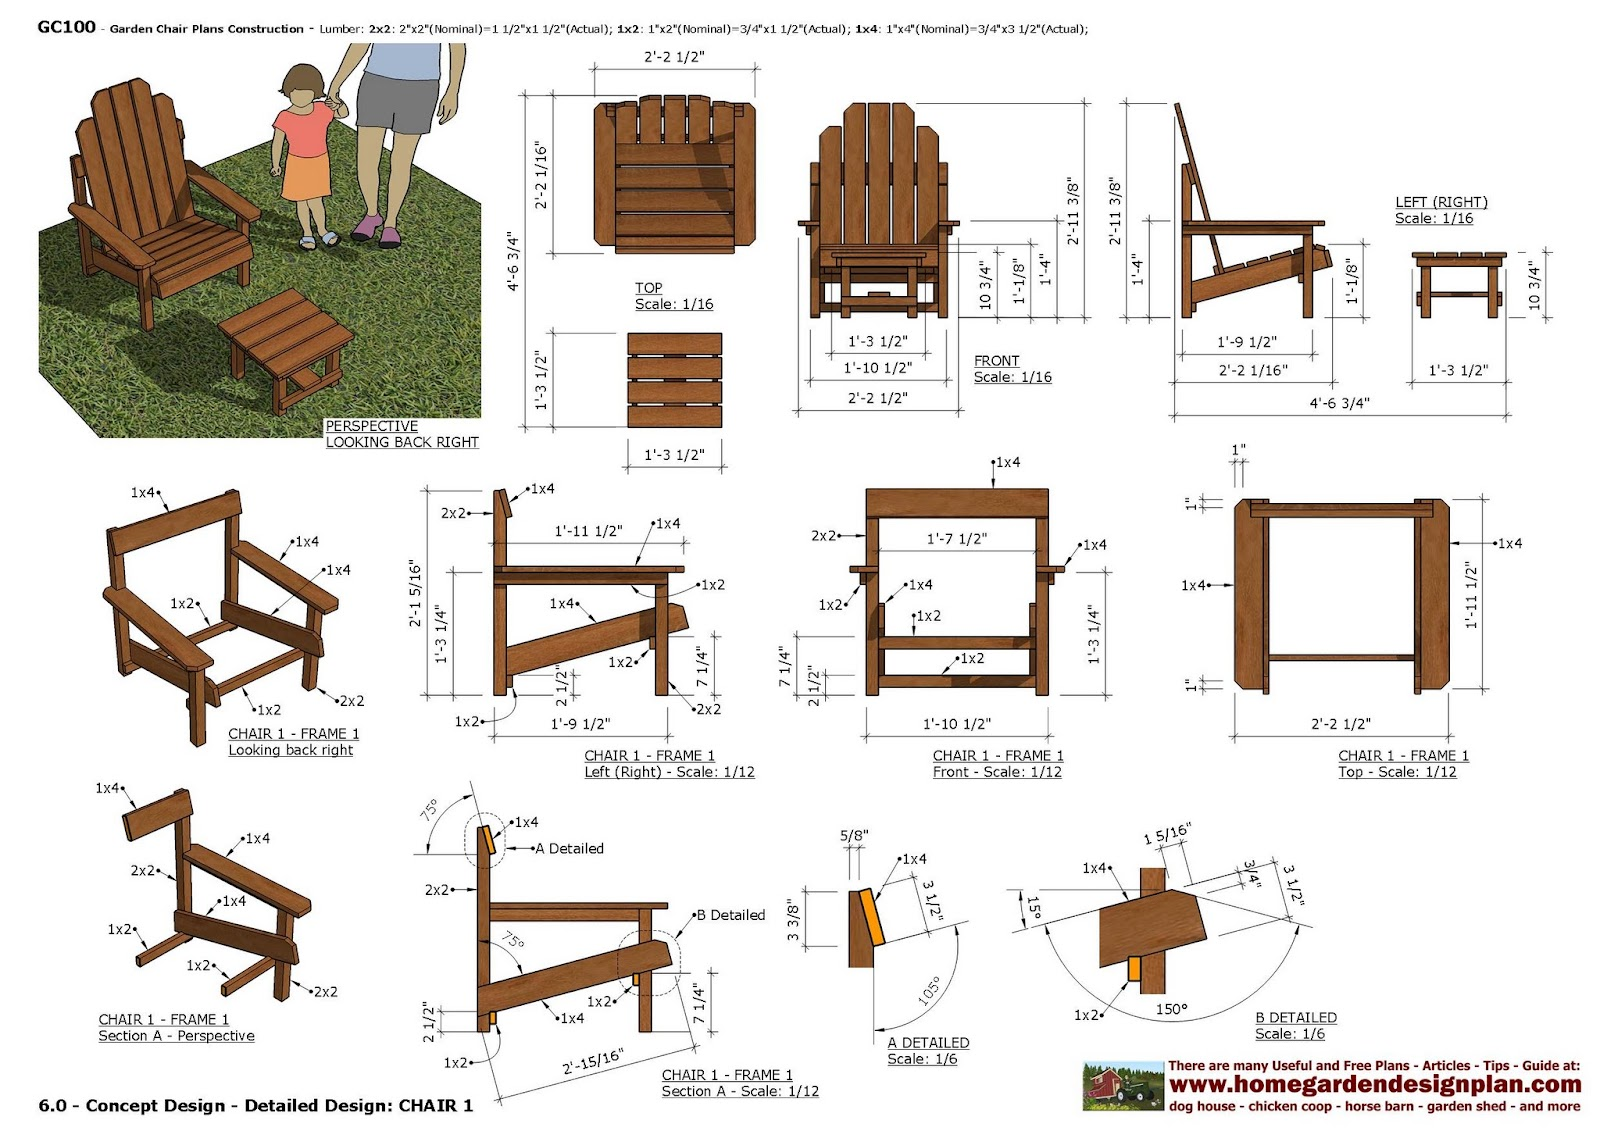 Garden Furniture Plans home garden plans: furniture plans: arbor swing plans - garden